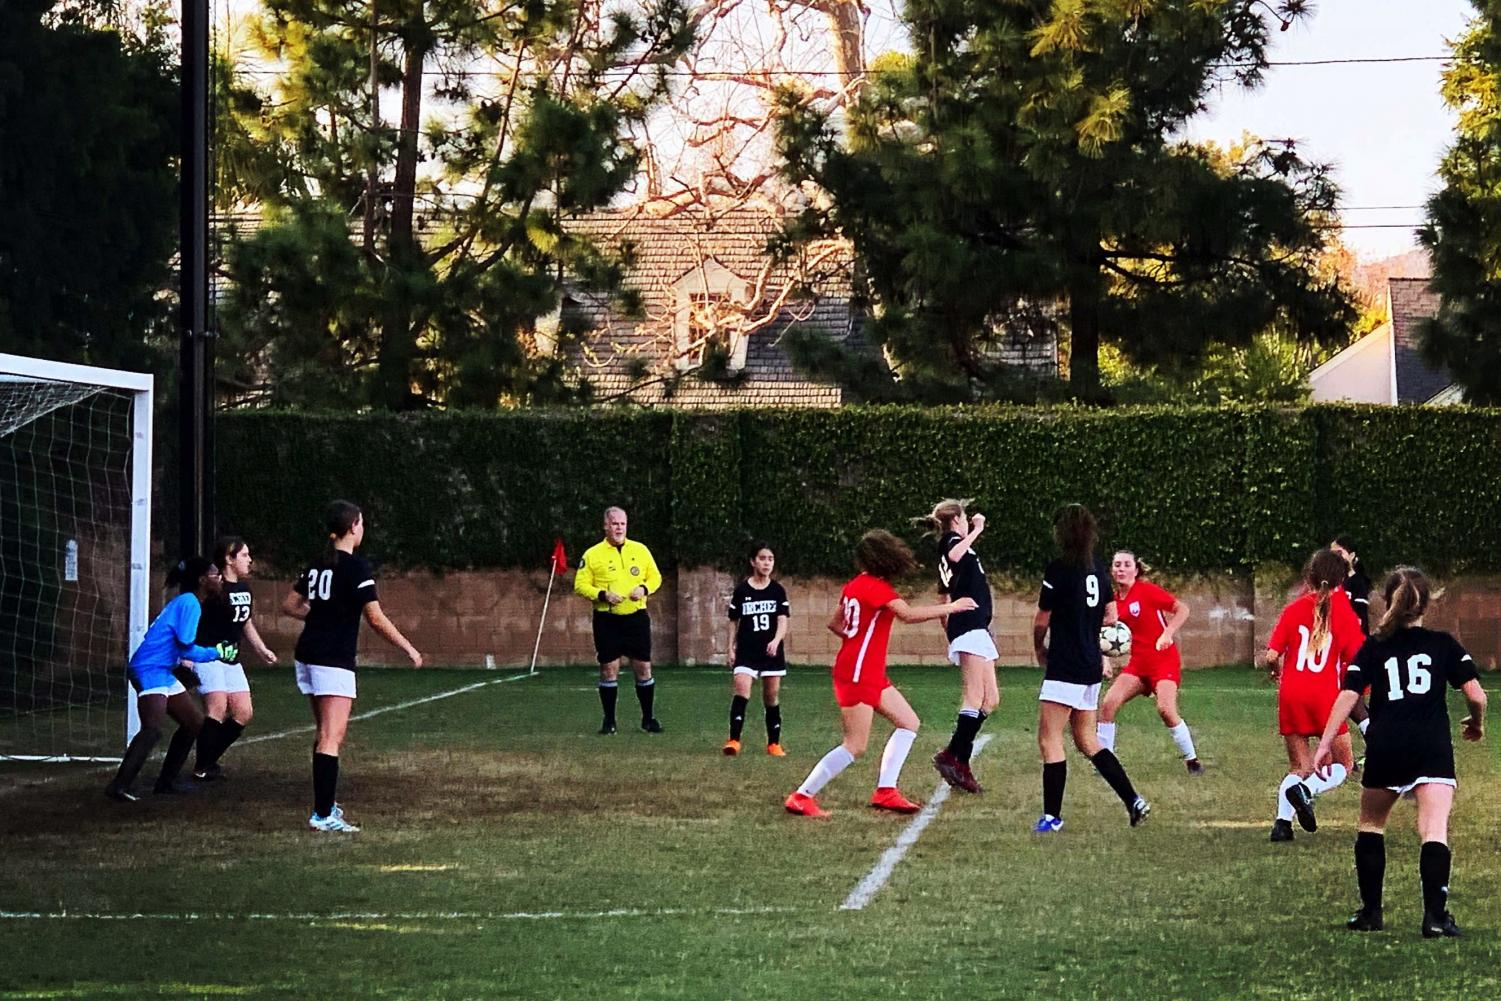 The middle school soccer team plays a game against Crossroads on Jan. 14. The game took place on campus and the team lost.